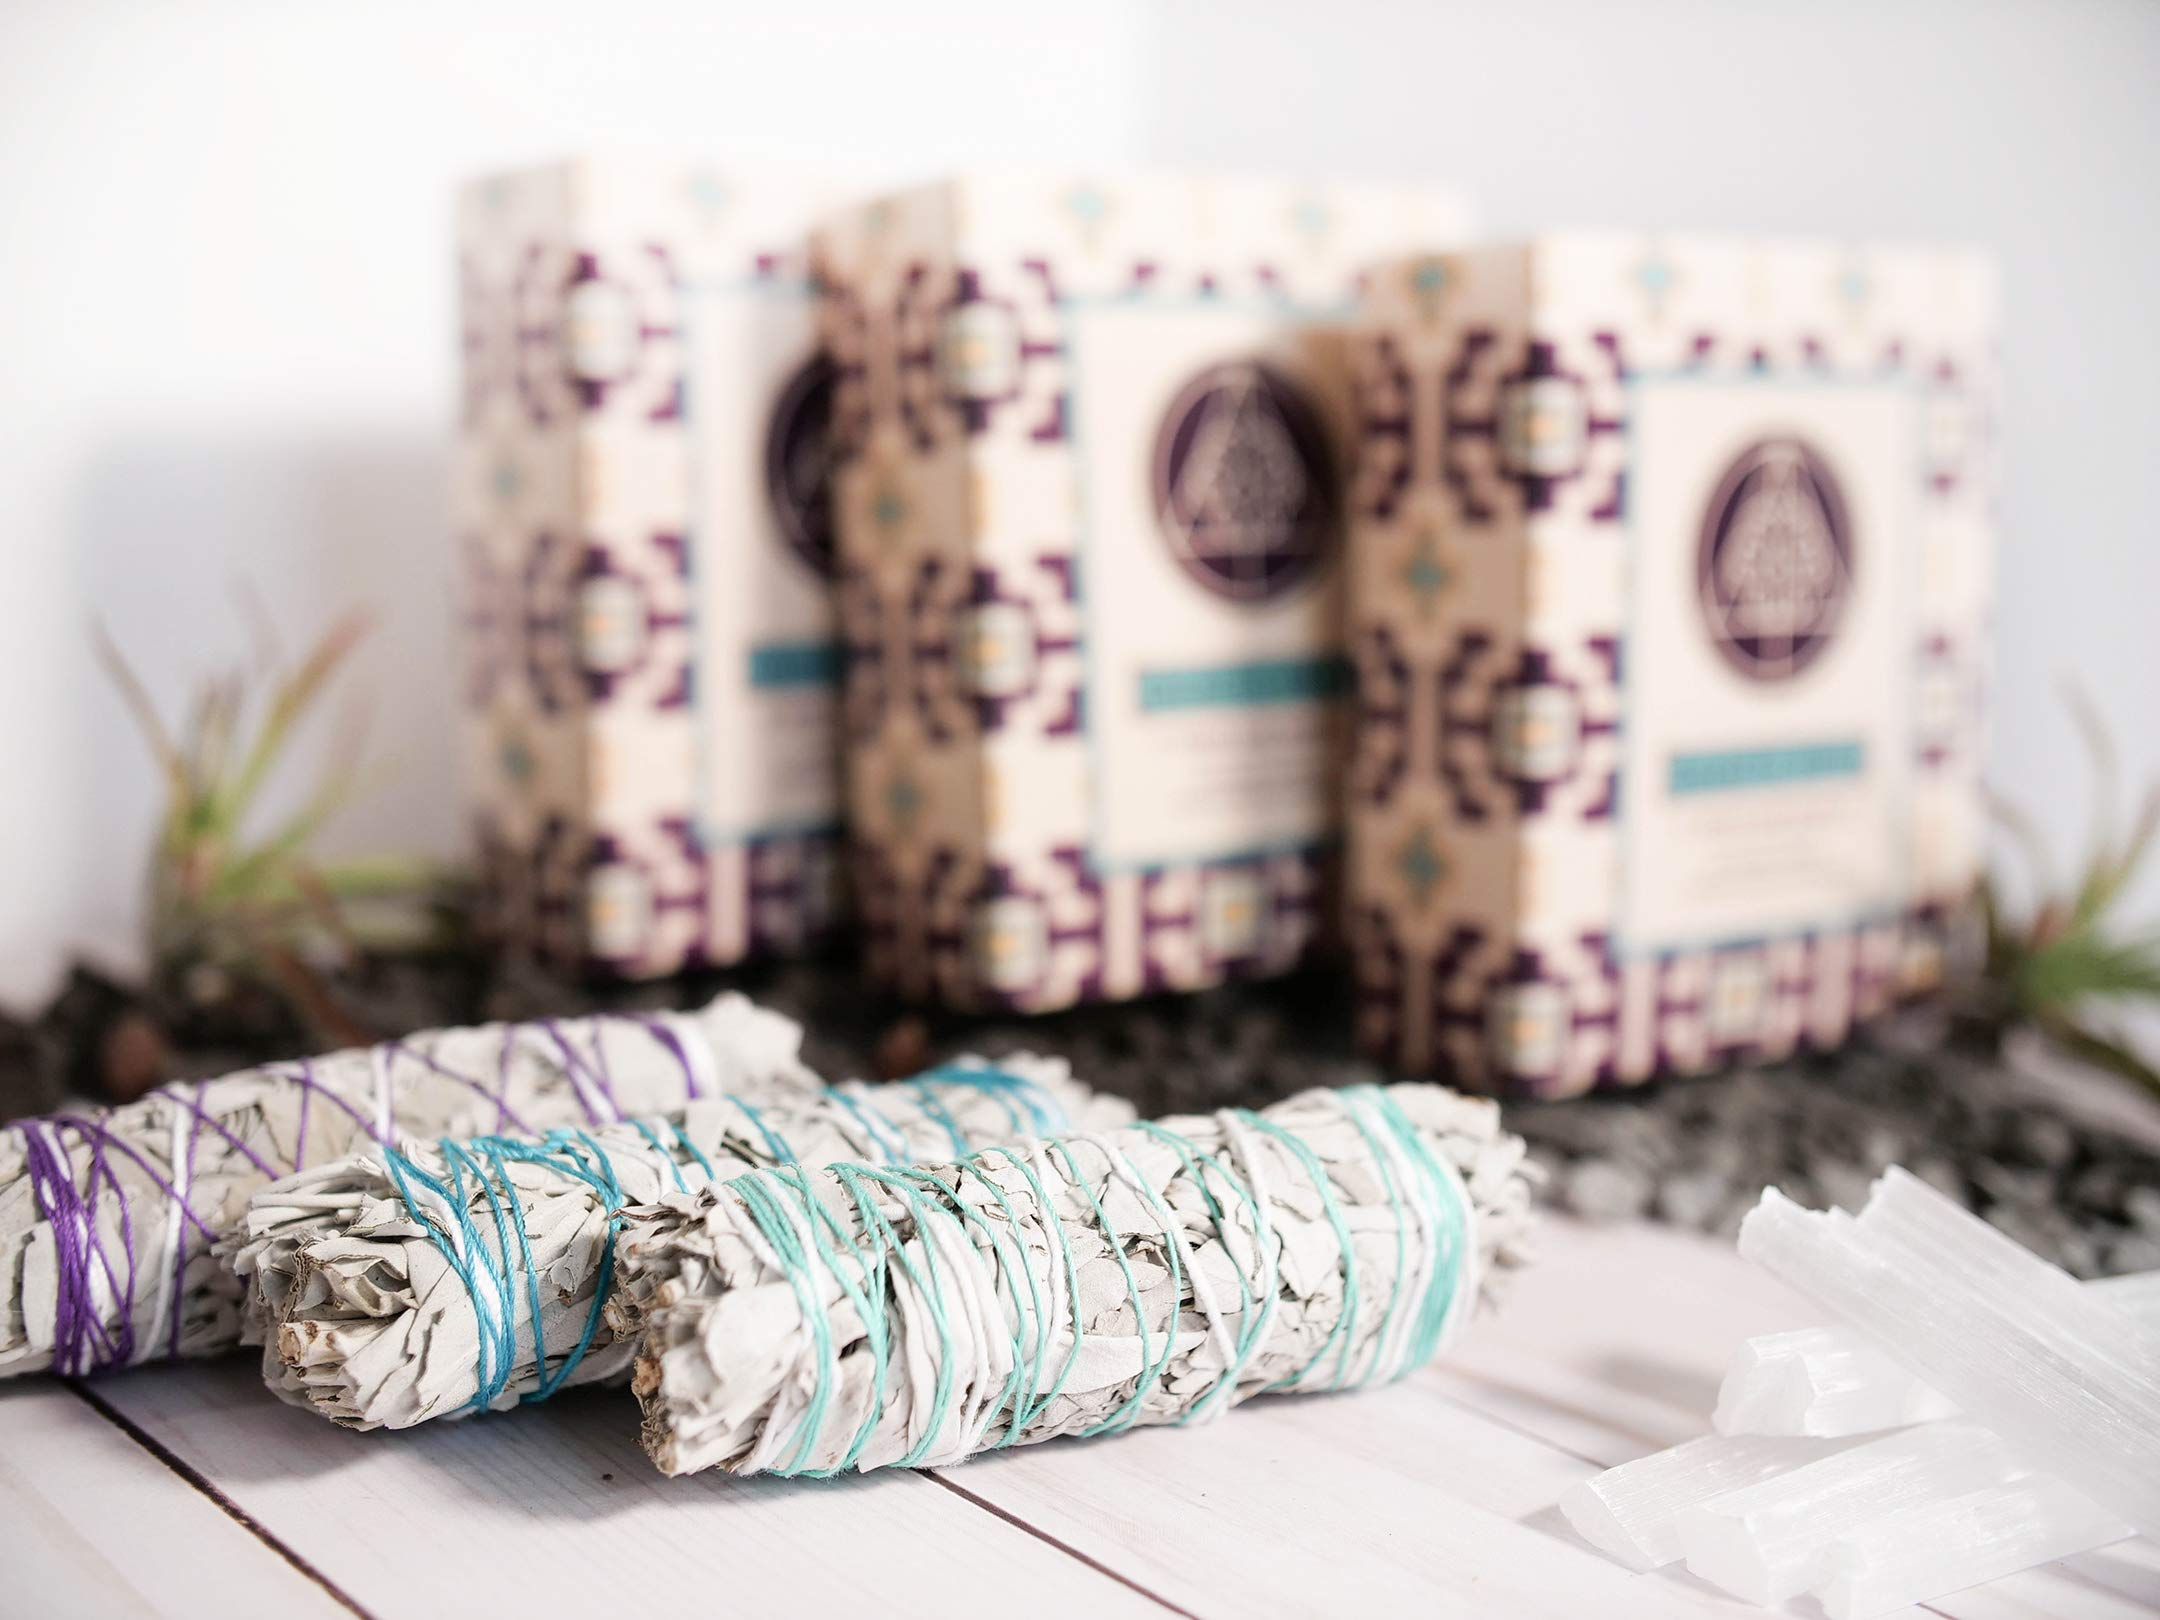 Galactic Brain 4 Inch White Sage Bundles | 3 White Sage Smudge Sticks with 2 Sample Palo Santo Sticks and 1 Selenite Crystal in Gift Set for Cleansing Your Home by Galactic Brain (Image #3)